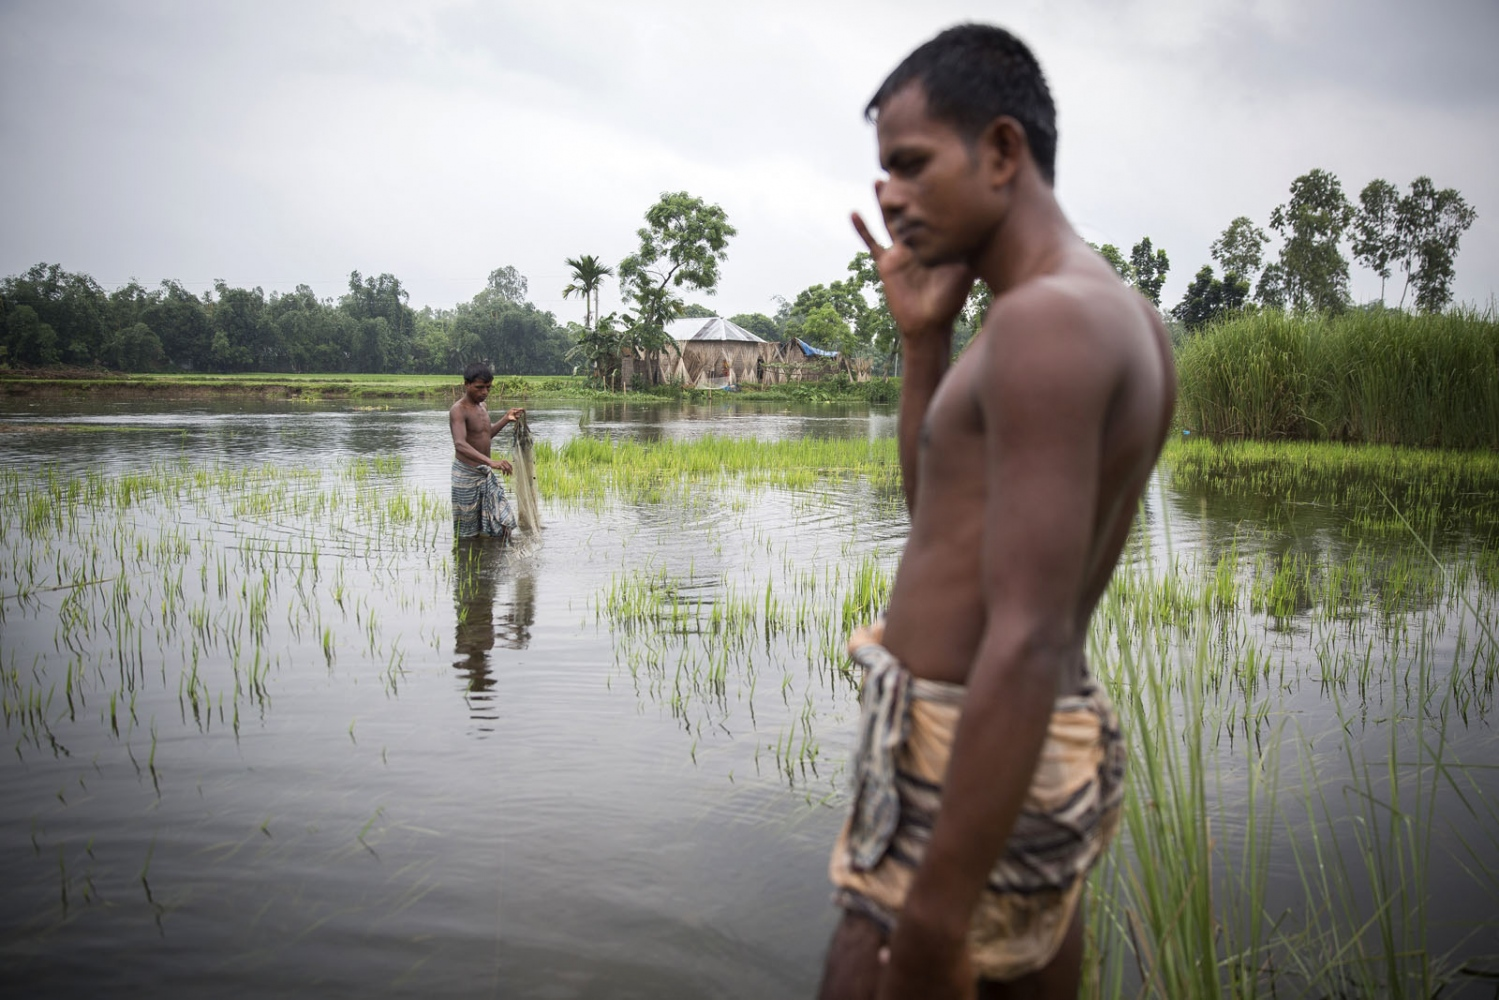 Bangladeshi men who lives very close to an enclave fish in a river swollen by rain. This part of Northern Bangladesh is very poor with most relying on fishing and agriculture to survive. Yet these man and their family will have electricity and be able to receive such things as basic health care and fertilizer subsidies. Those living in the enclaves will receive none of this.